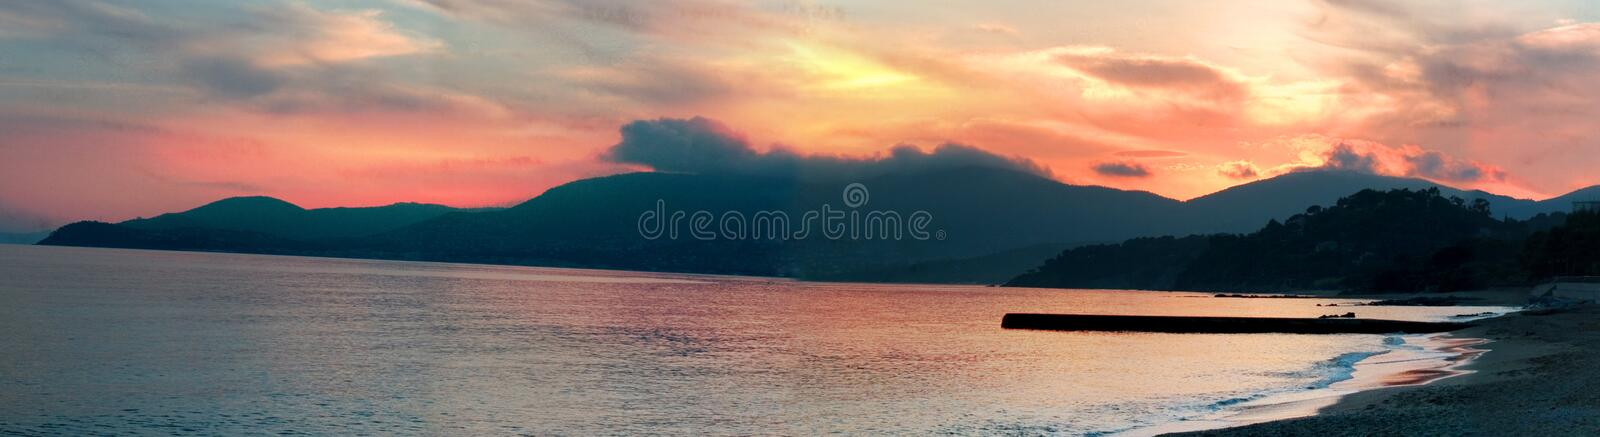 Sunset at beach royalty free stock images